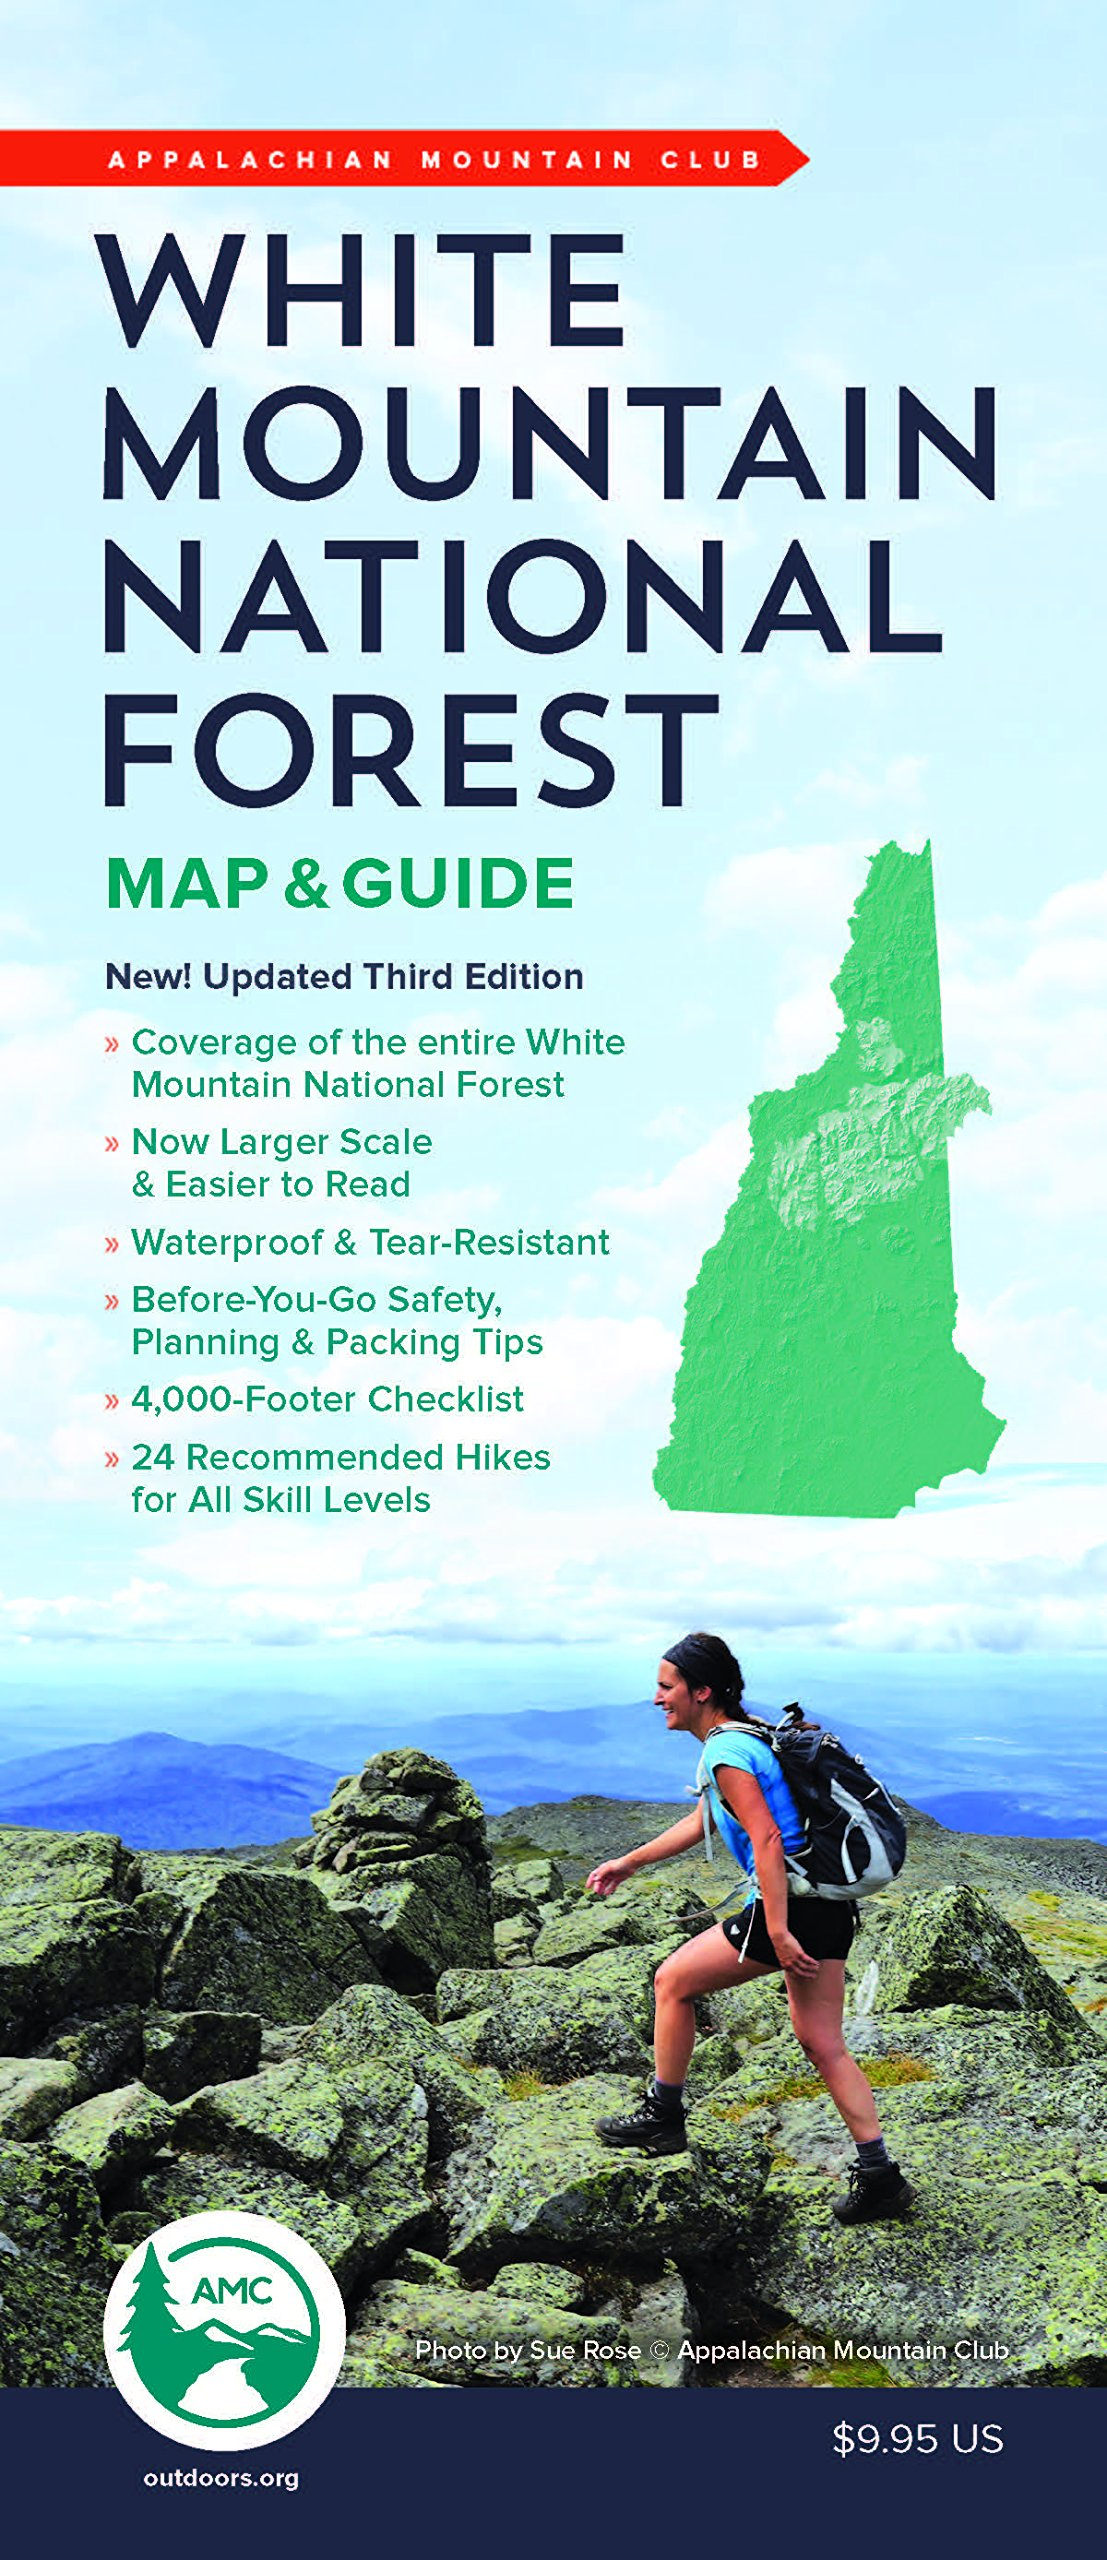 Amc White Mountain National Forest Map Guide Appalachian Mountain - Us-map-with-appalachian-mountains